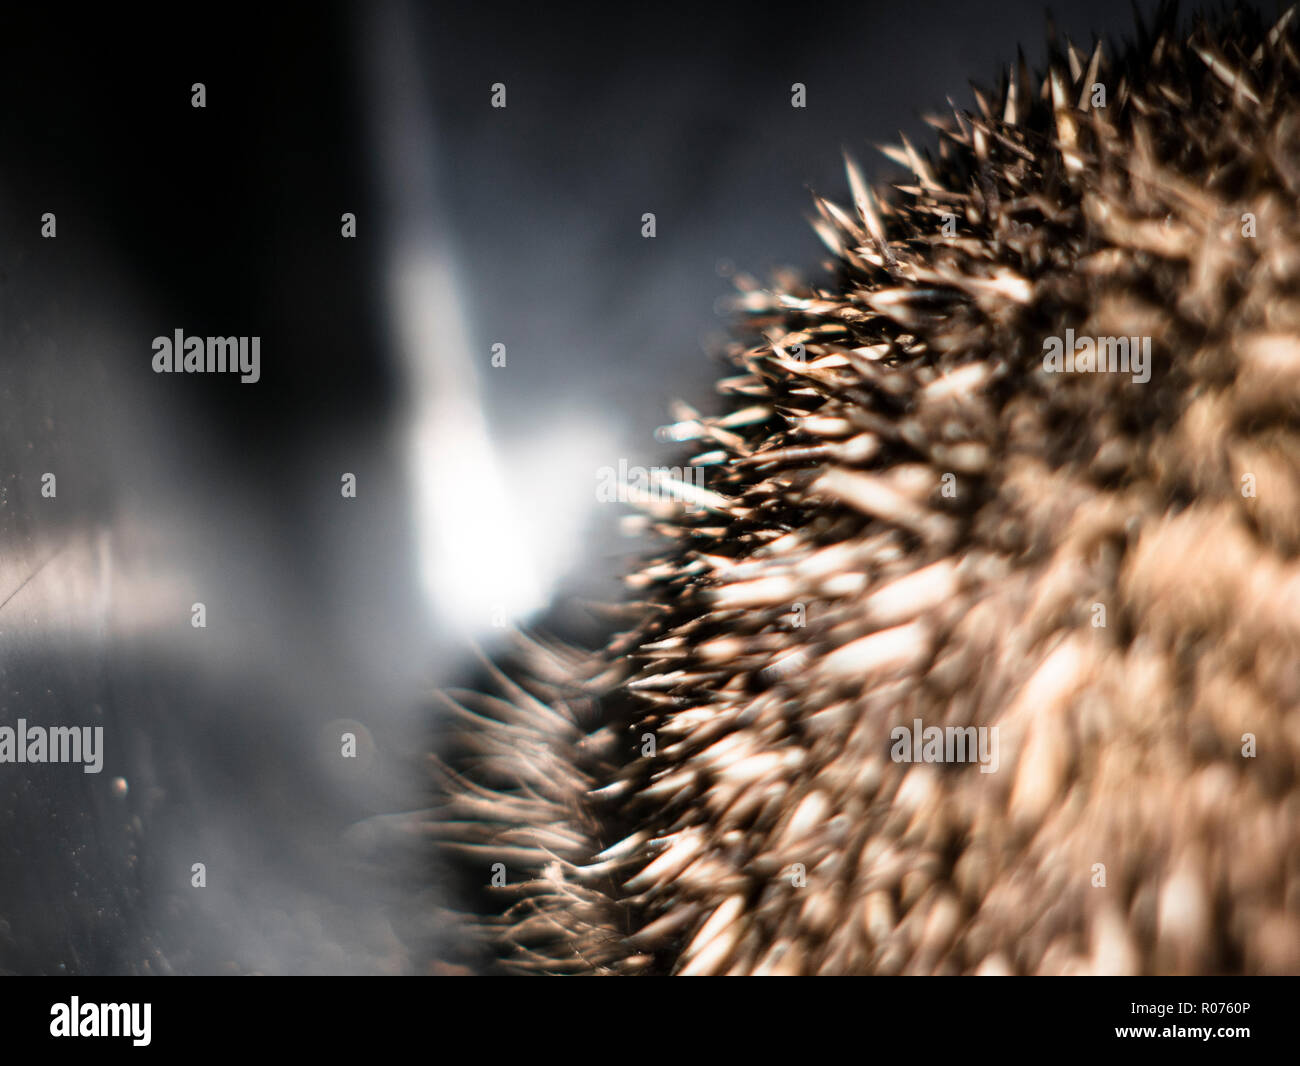 snout detail of a scared hedgehog - Stock Image